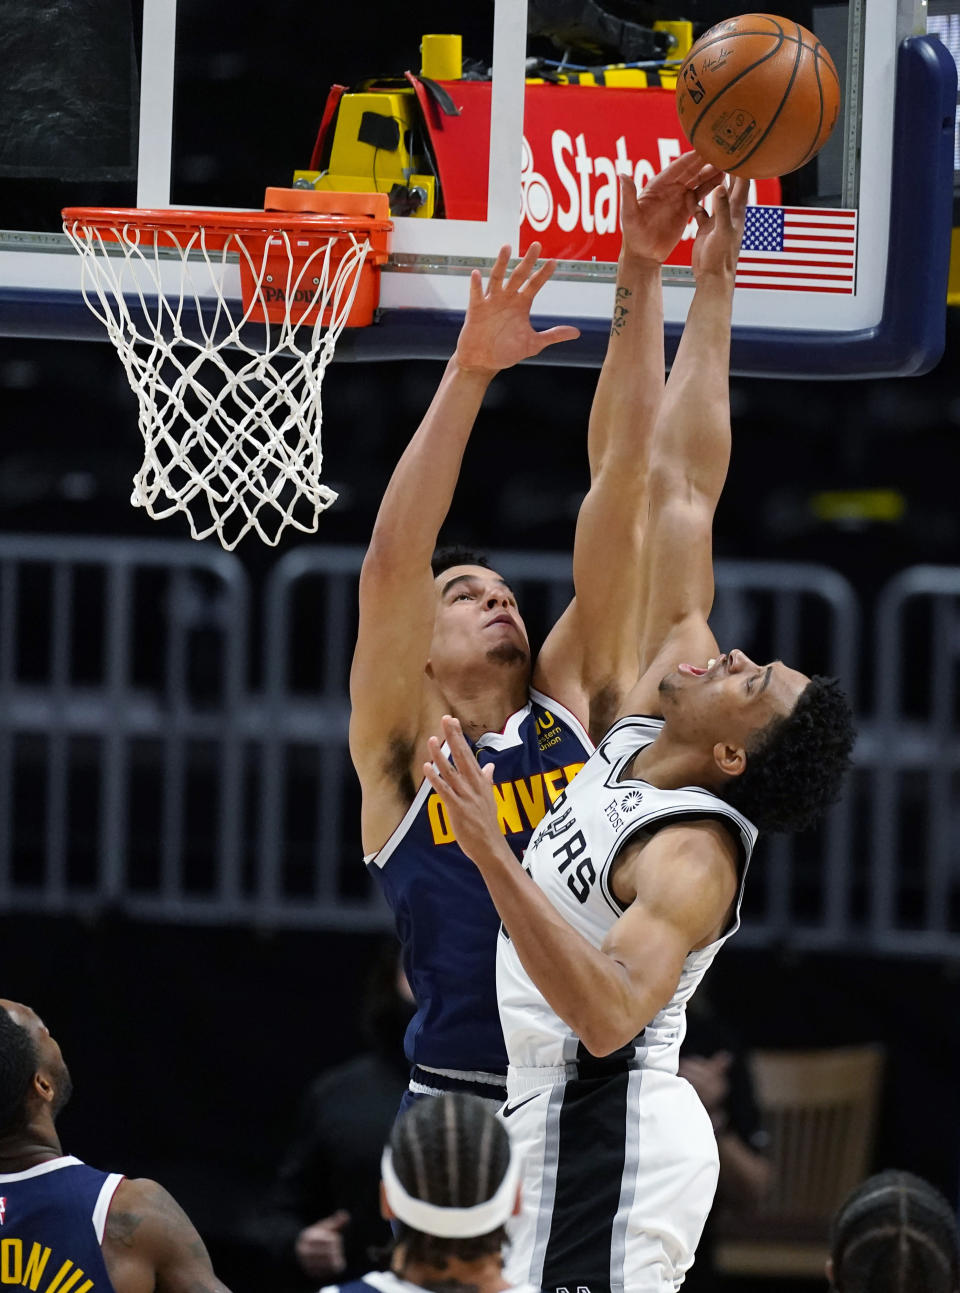 Denver Nuggets forward Michael Porter Jr., left, blocks a last-second shot by San Antonio Spurs forward Keldon Johnson in the second half of an NBA basketball game Friday, April 9, 2021, in Denver. (AP Photo/David Zalubowski)